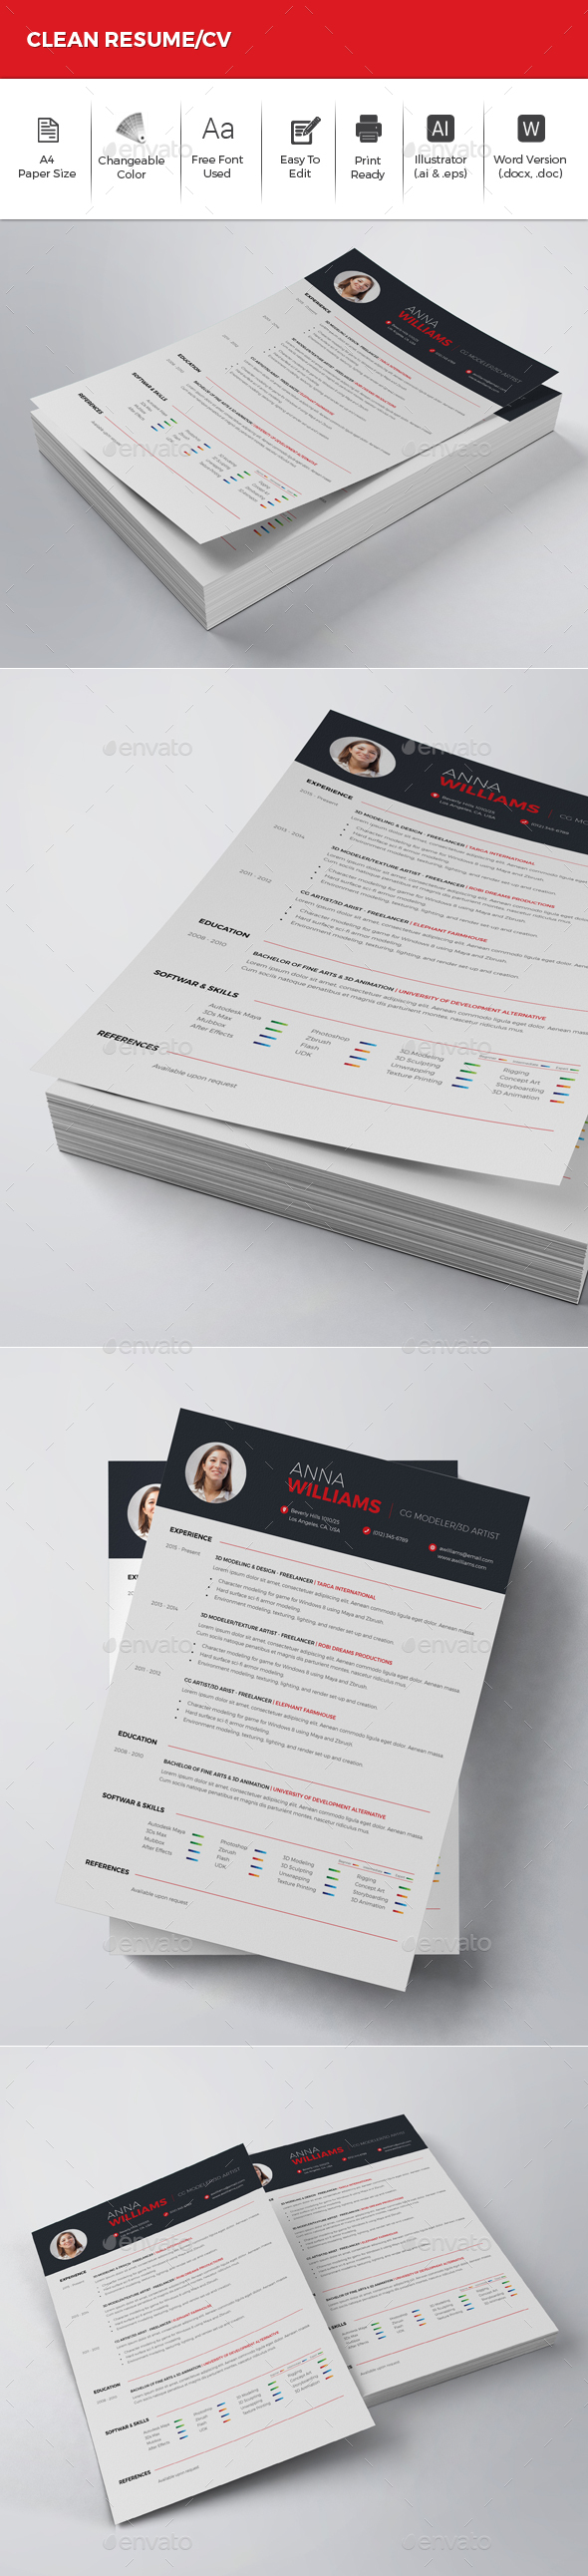 Clean Resume/CV - Resumes Stationery